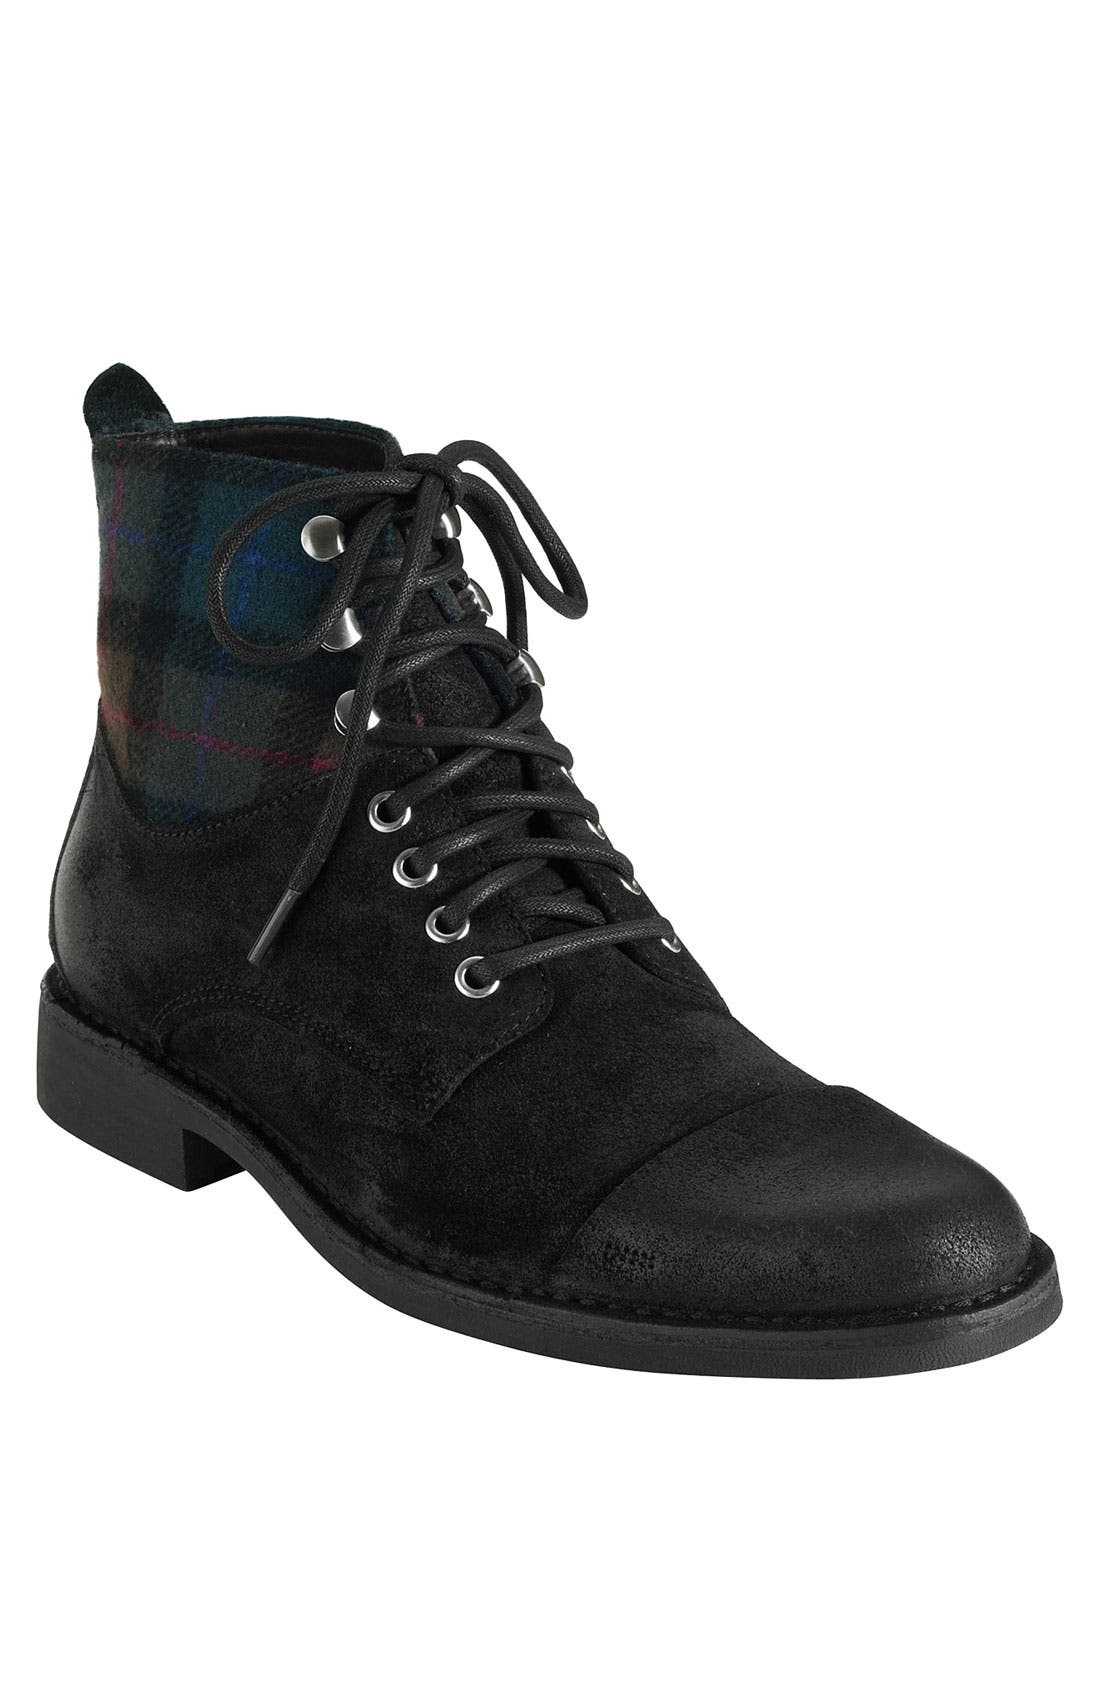 Alternate Image 1 Selected - Cole Haan 'Air Blythe' Boot